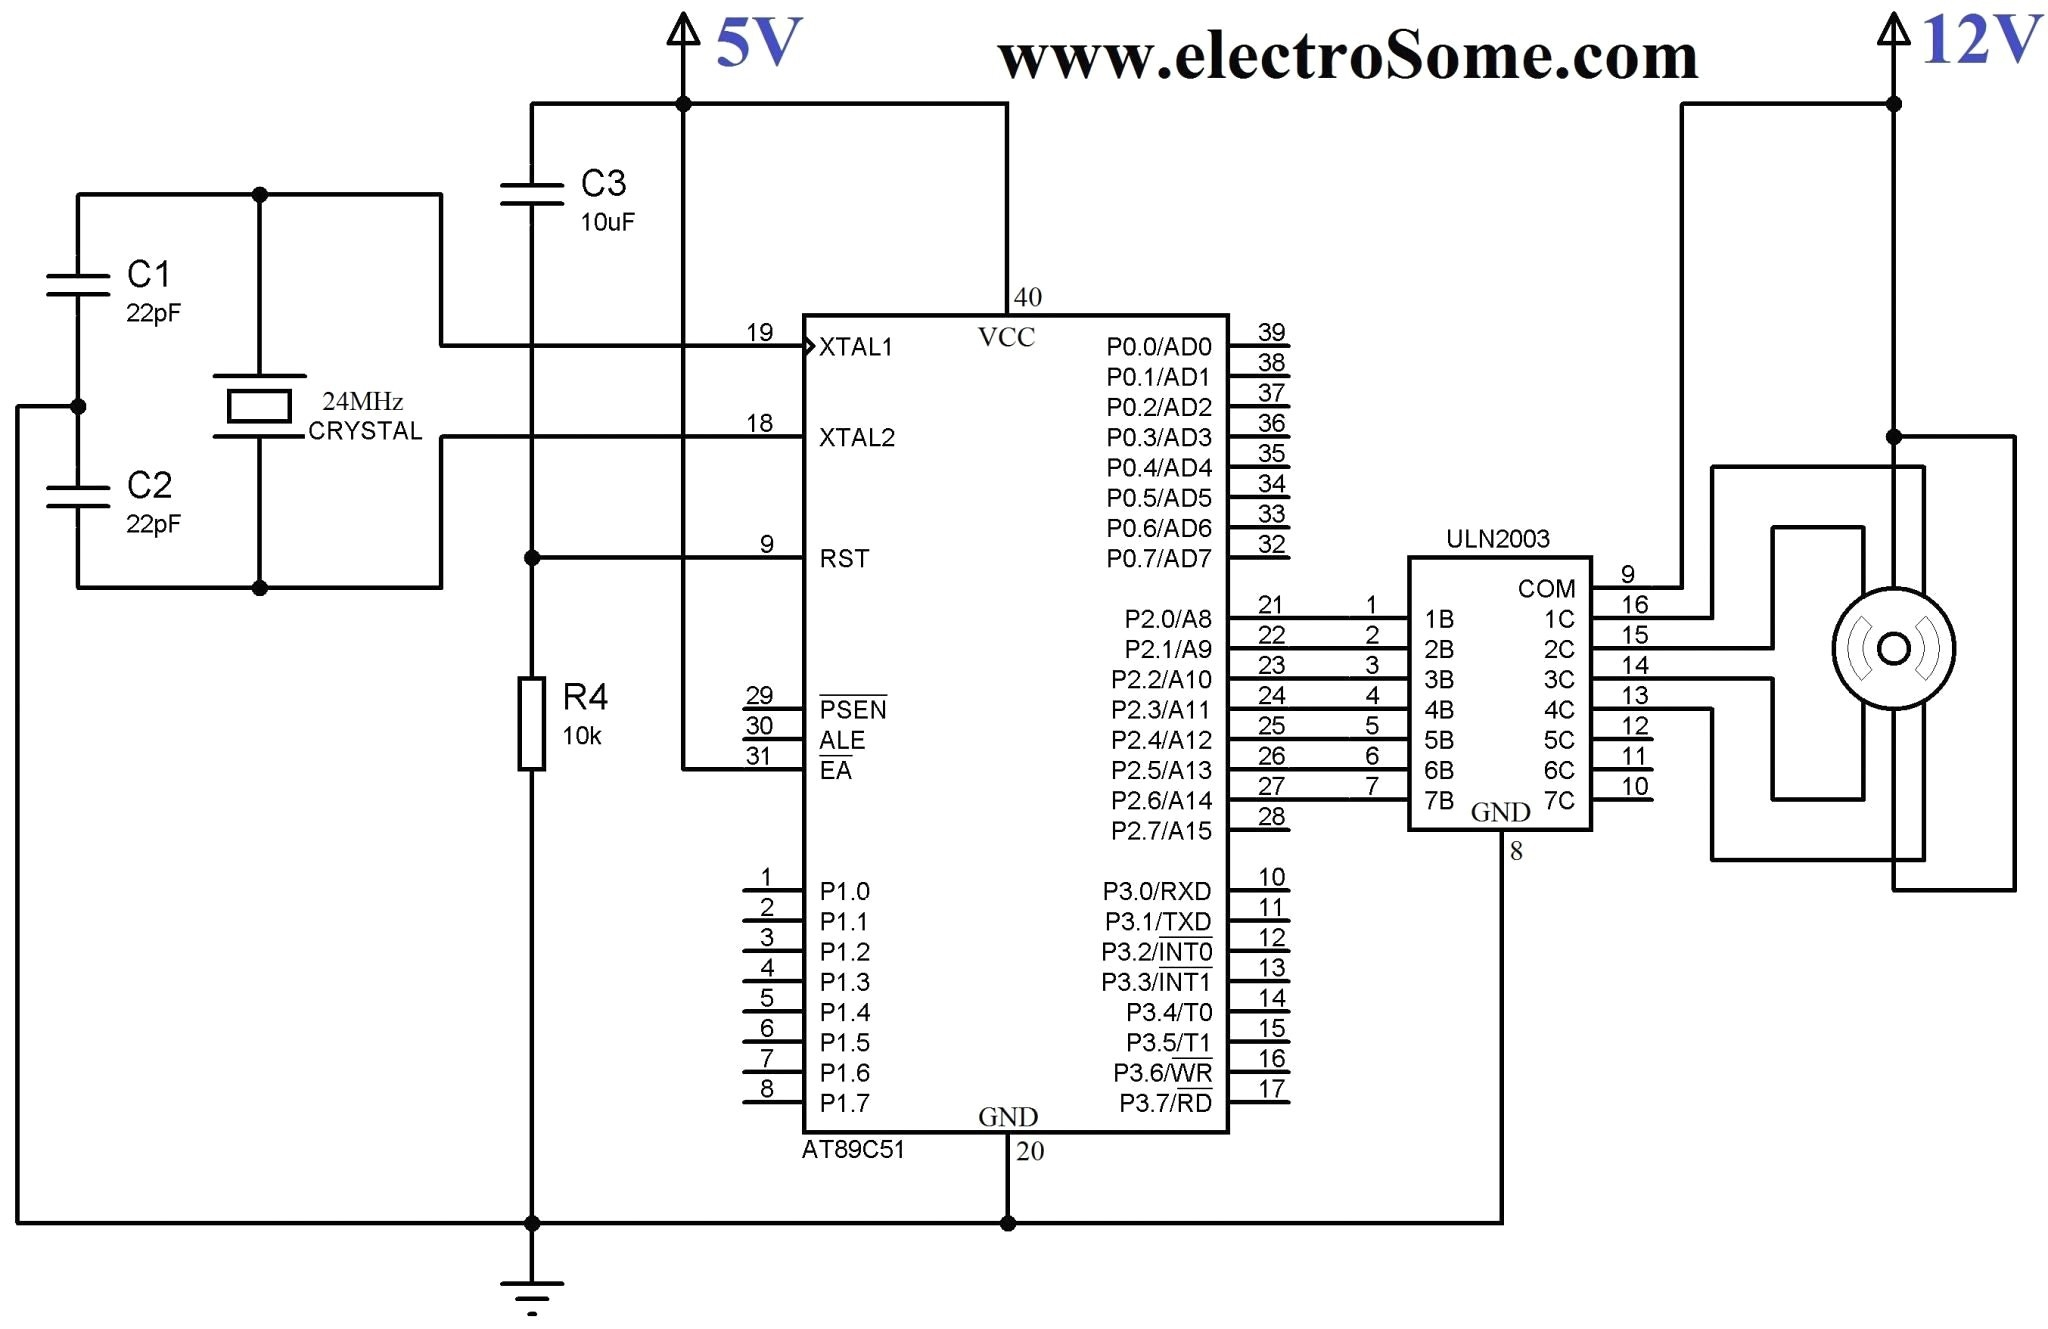 28 Mechanically Held Contactor Wiring Diagram